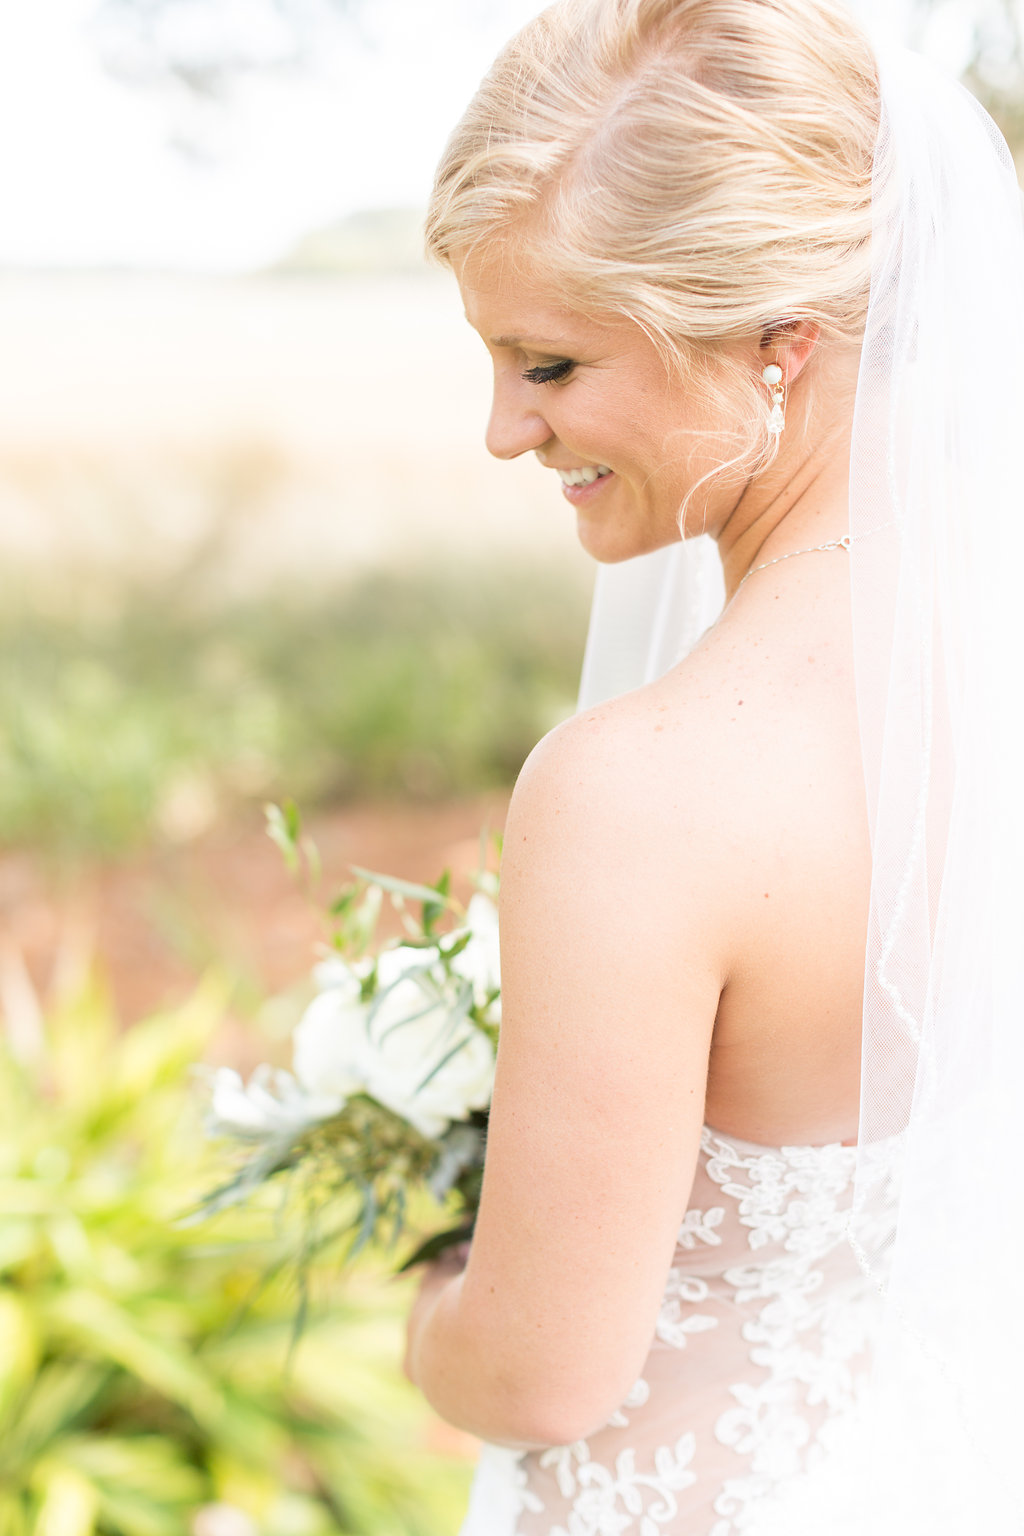 savannah-makeup-artist-hair-stylist-wedding-bridal-tybee-st-simons